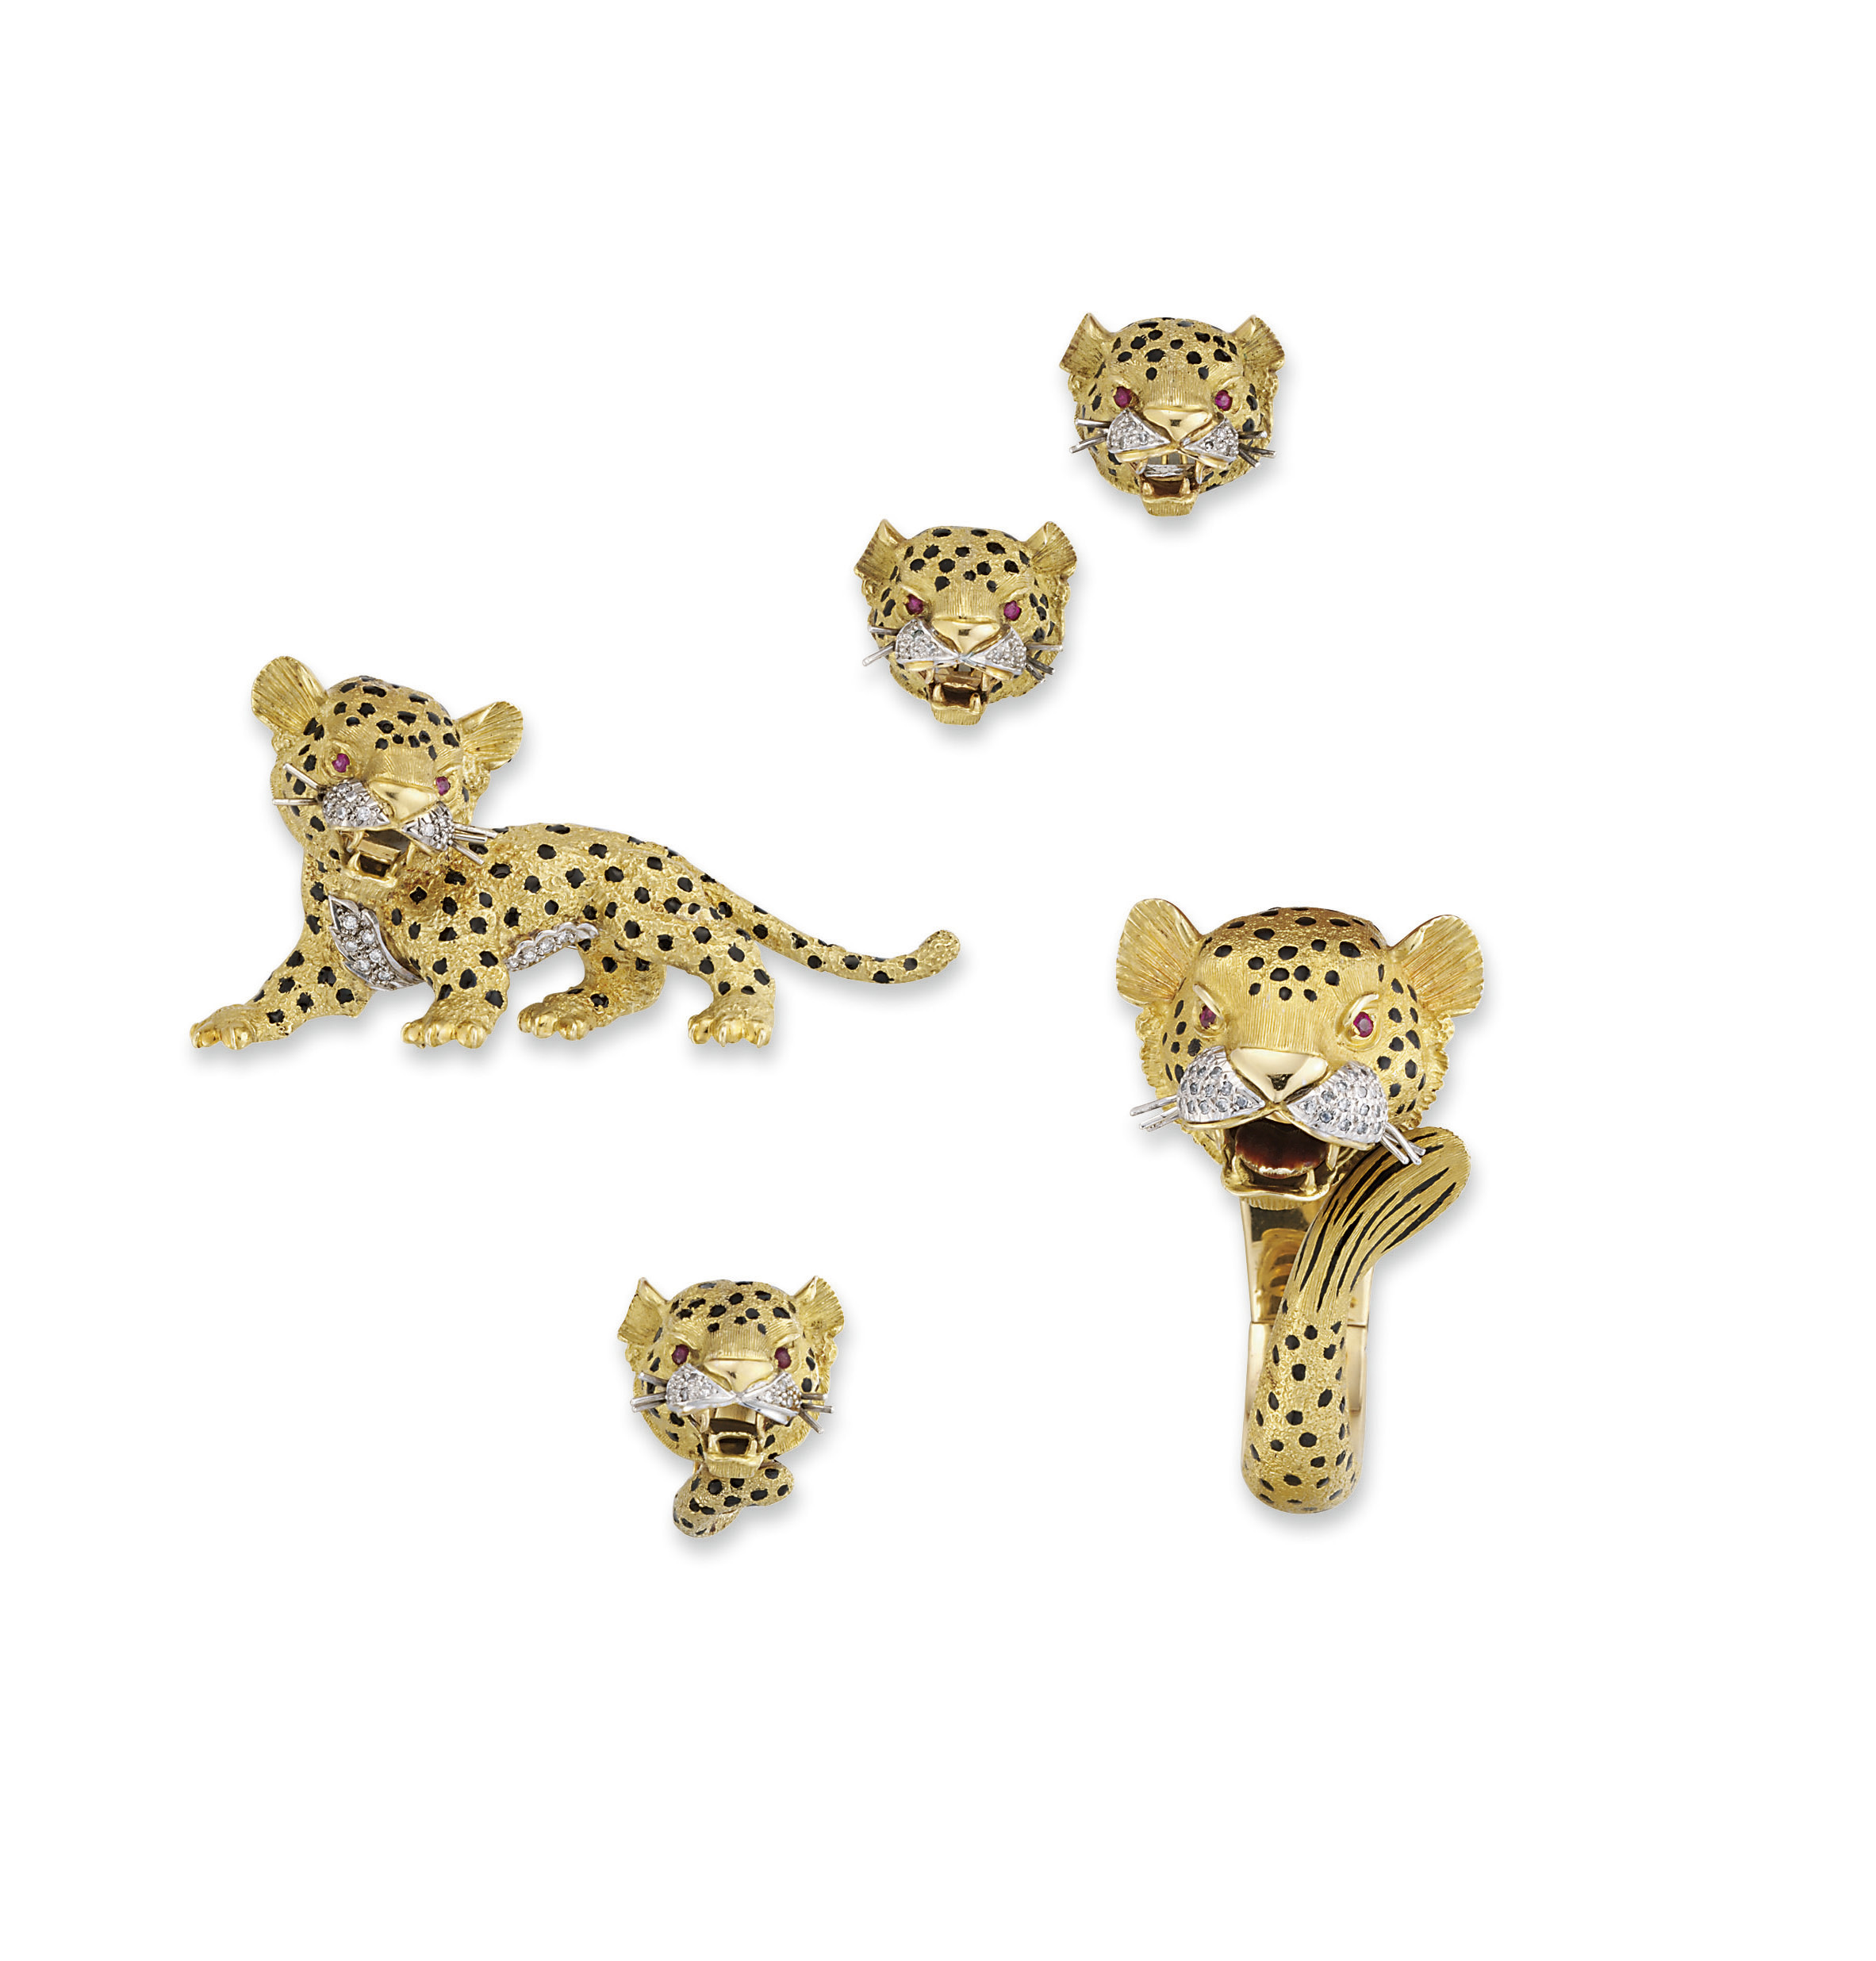 AN AMUSING SET OF DIAMOND, RUBY AND ENAMEL LEOPARD JEWELLERY, BY SANZ